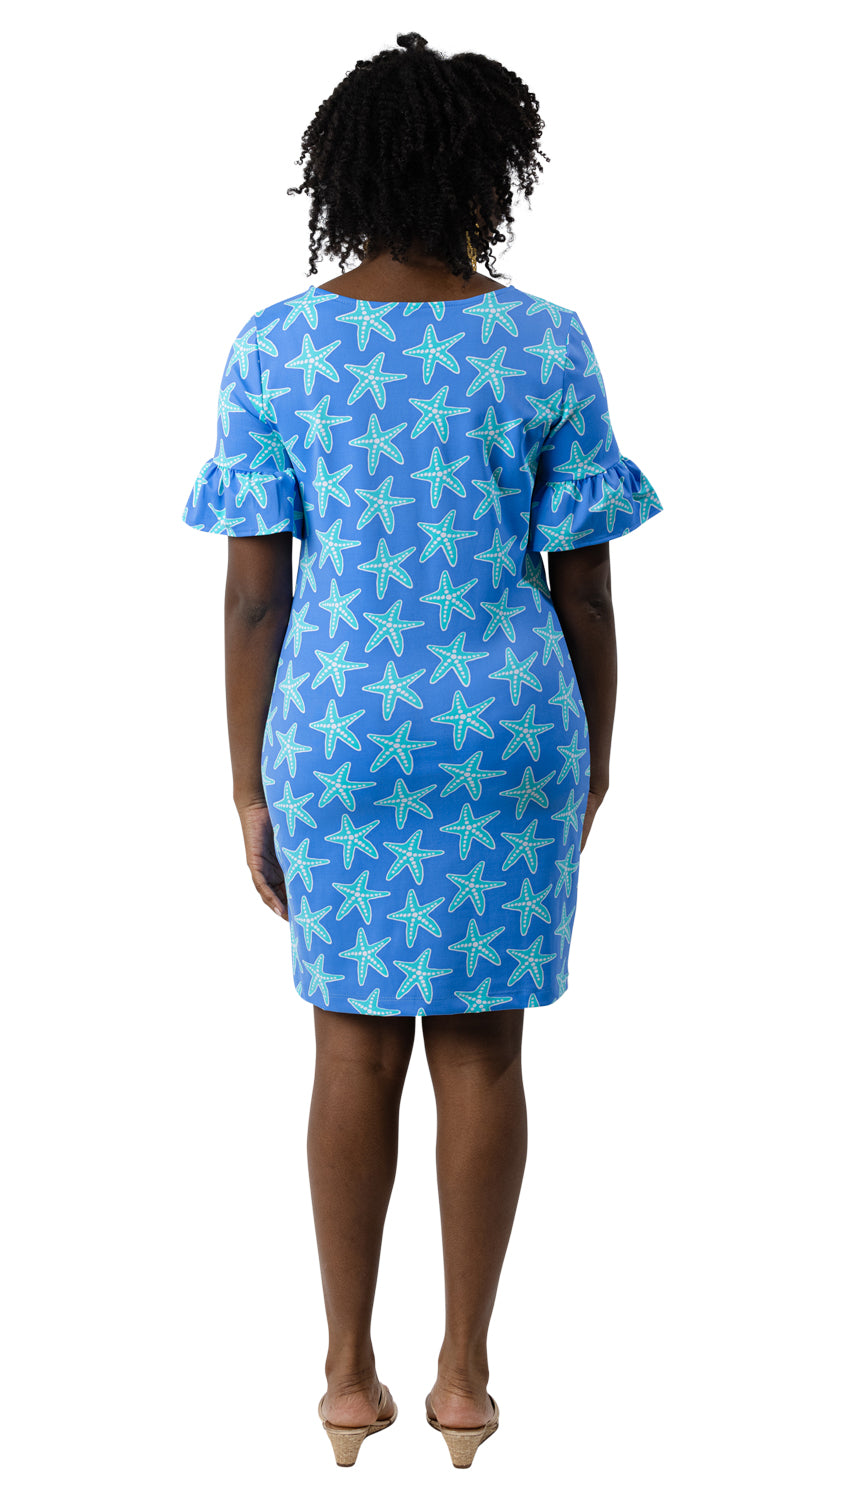 Dockside Dress - Blue Sea Star